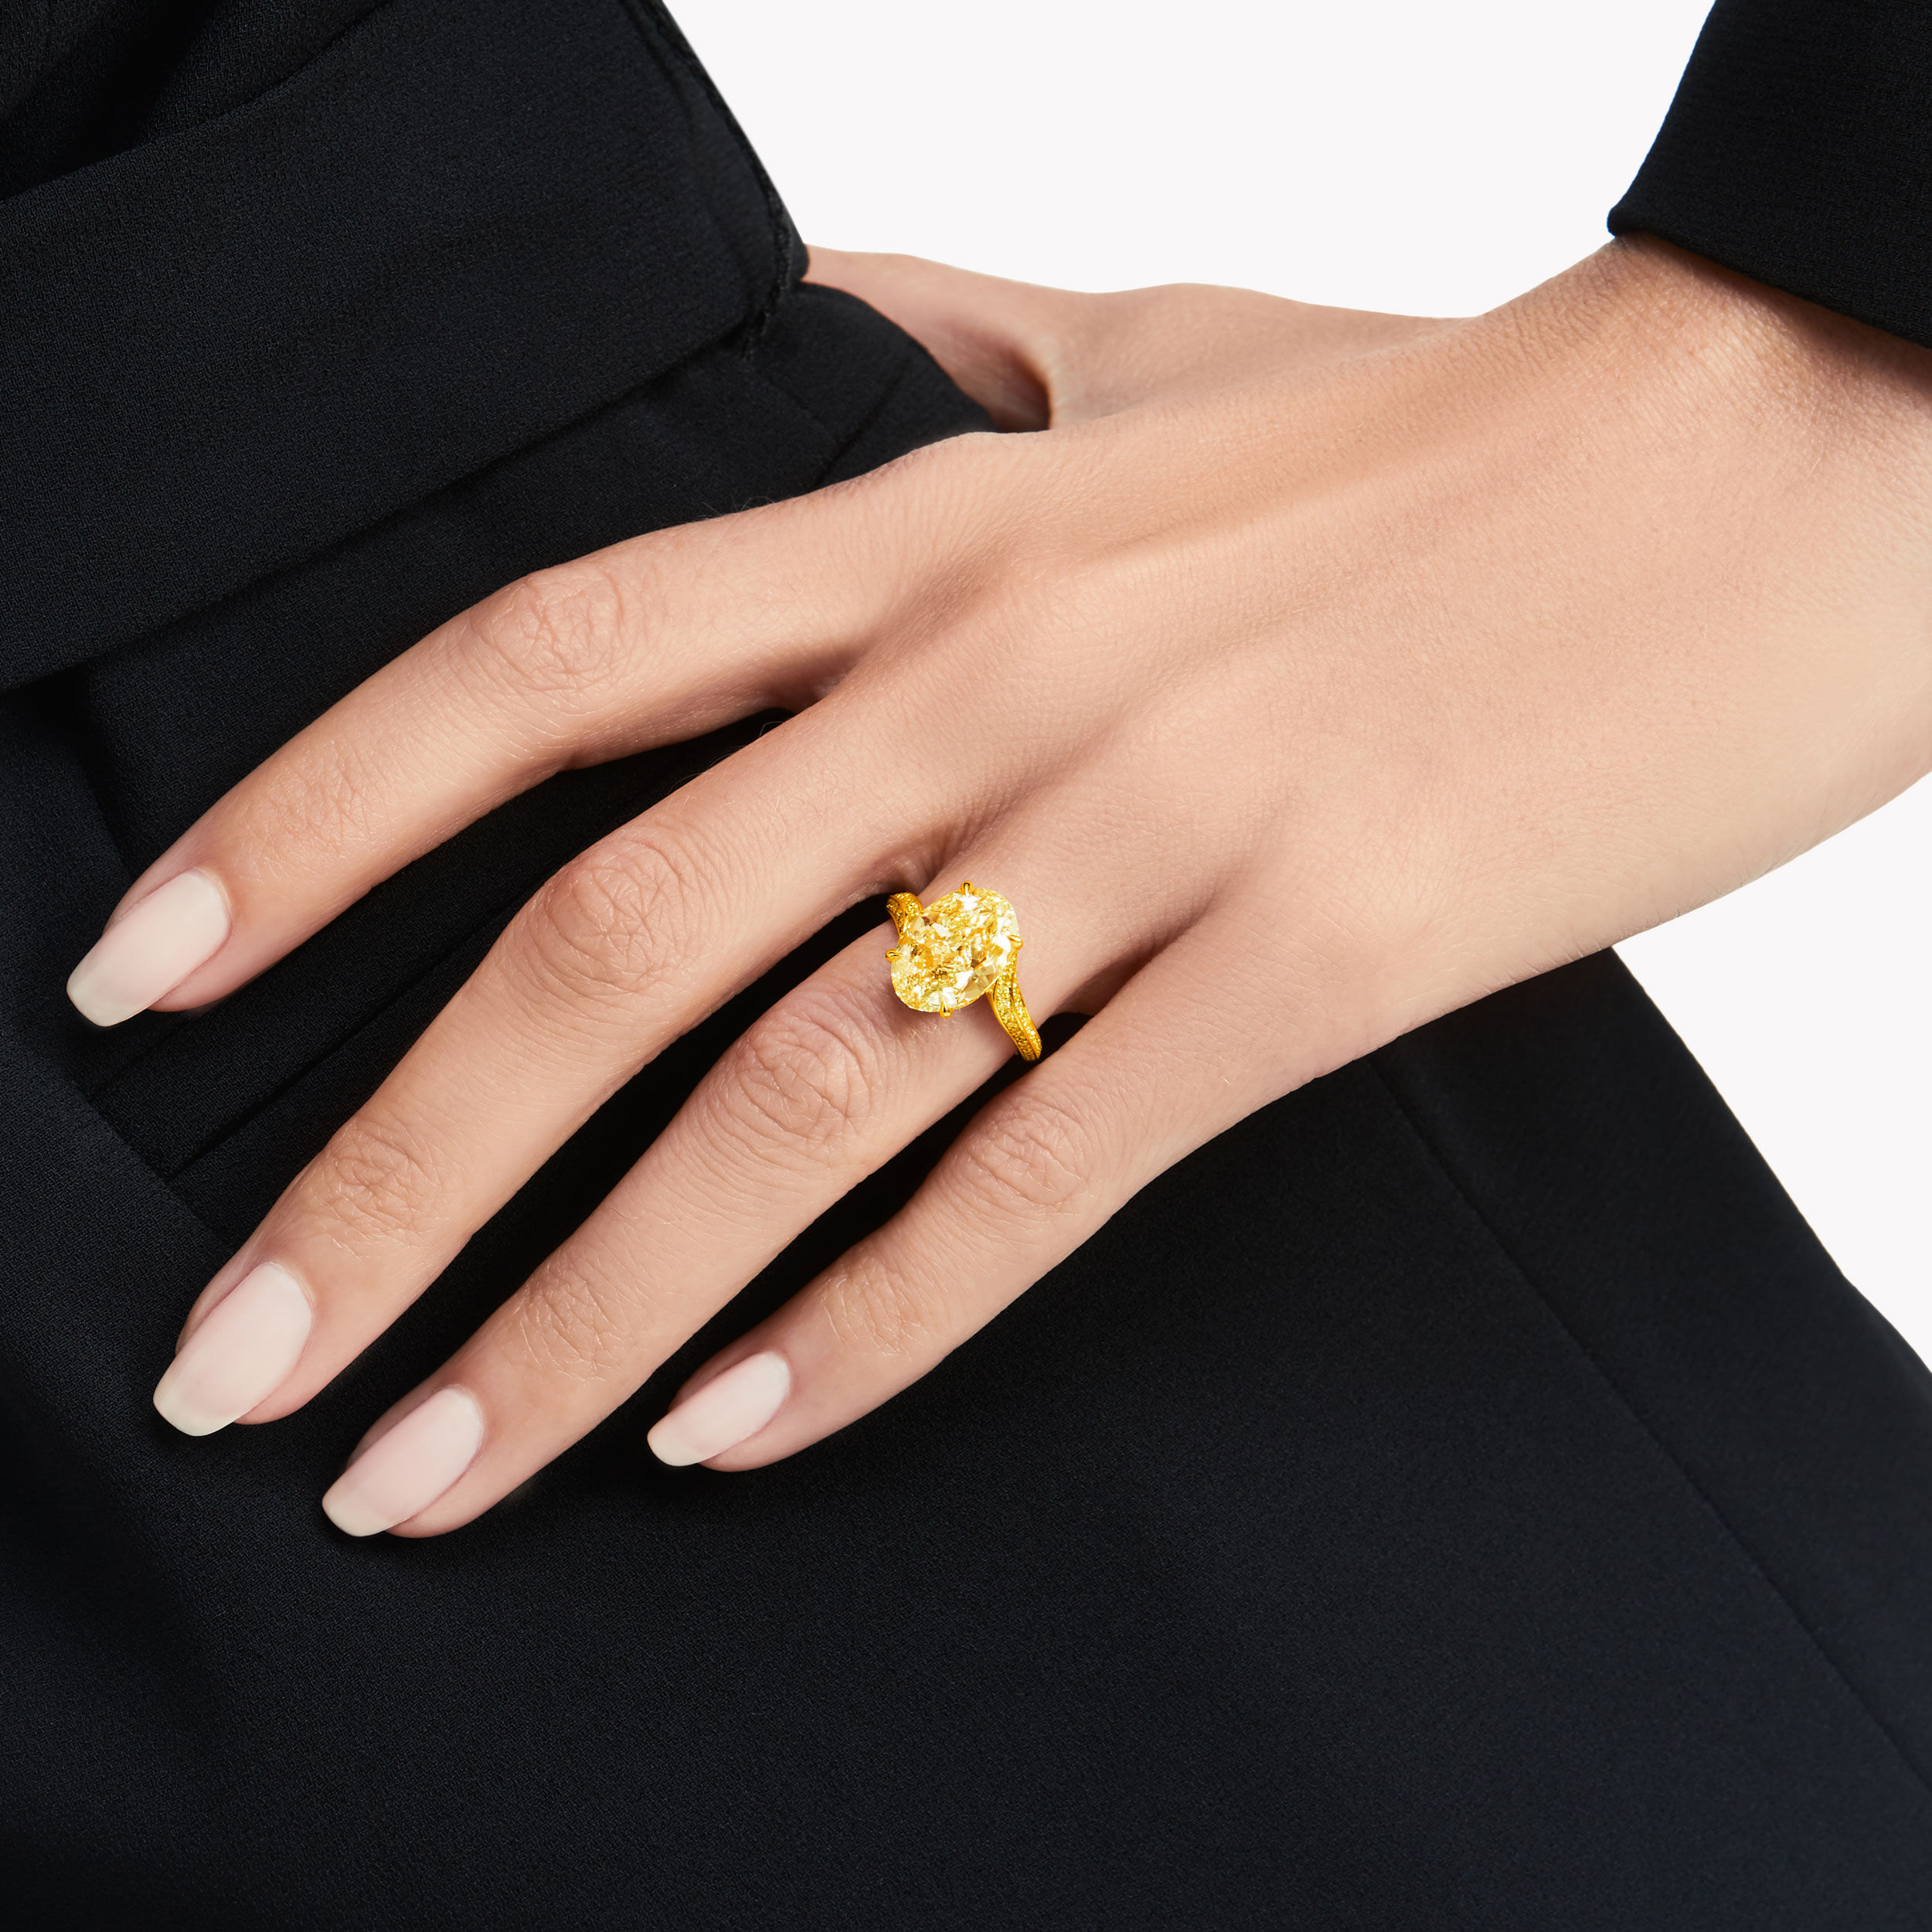 Model wearing a Graff oval yellow diamond ring.